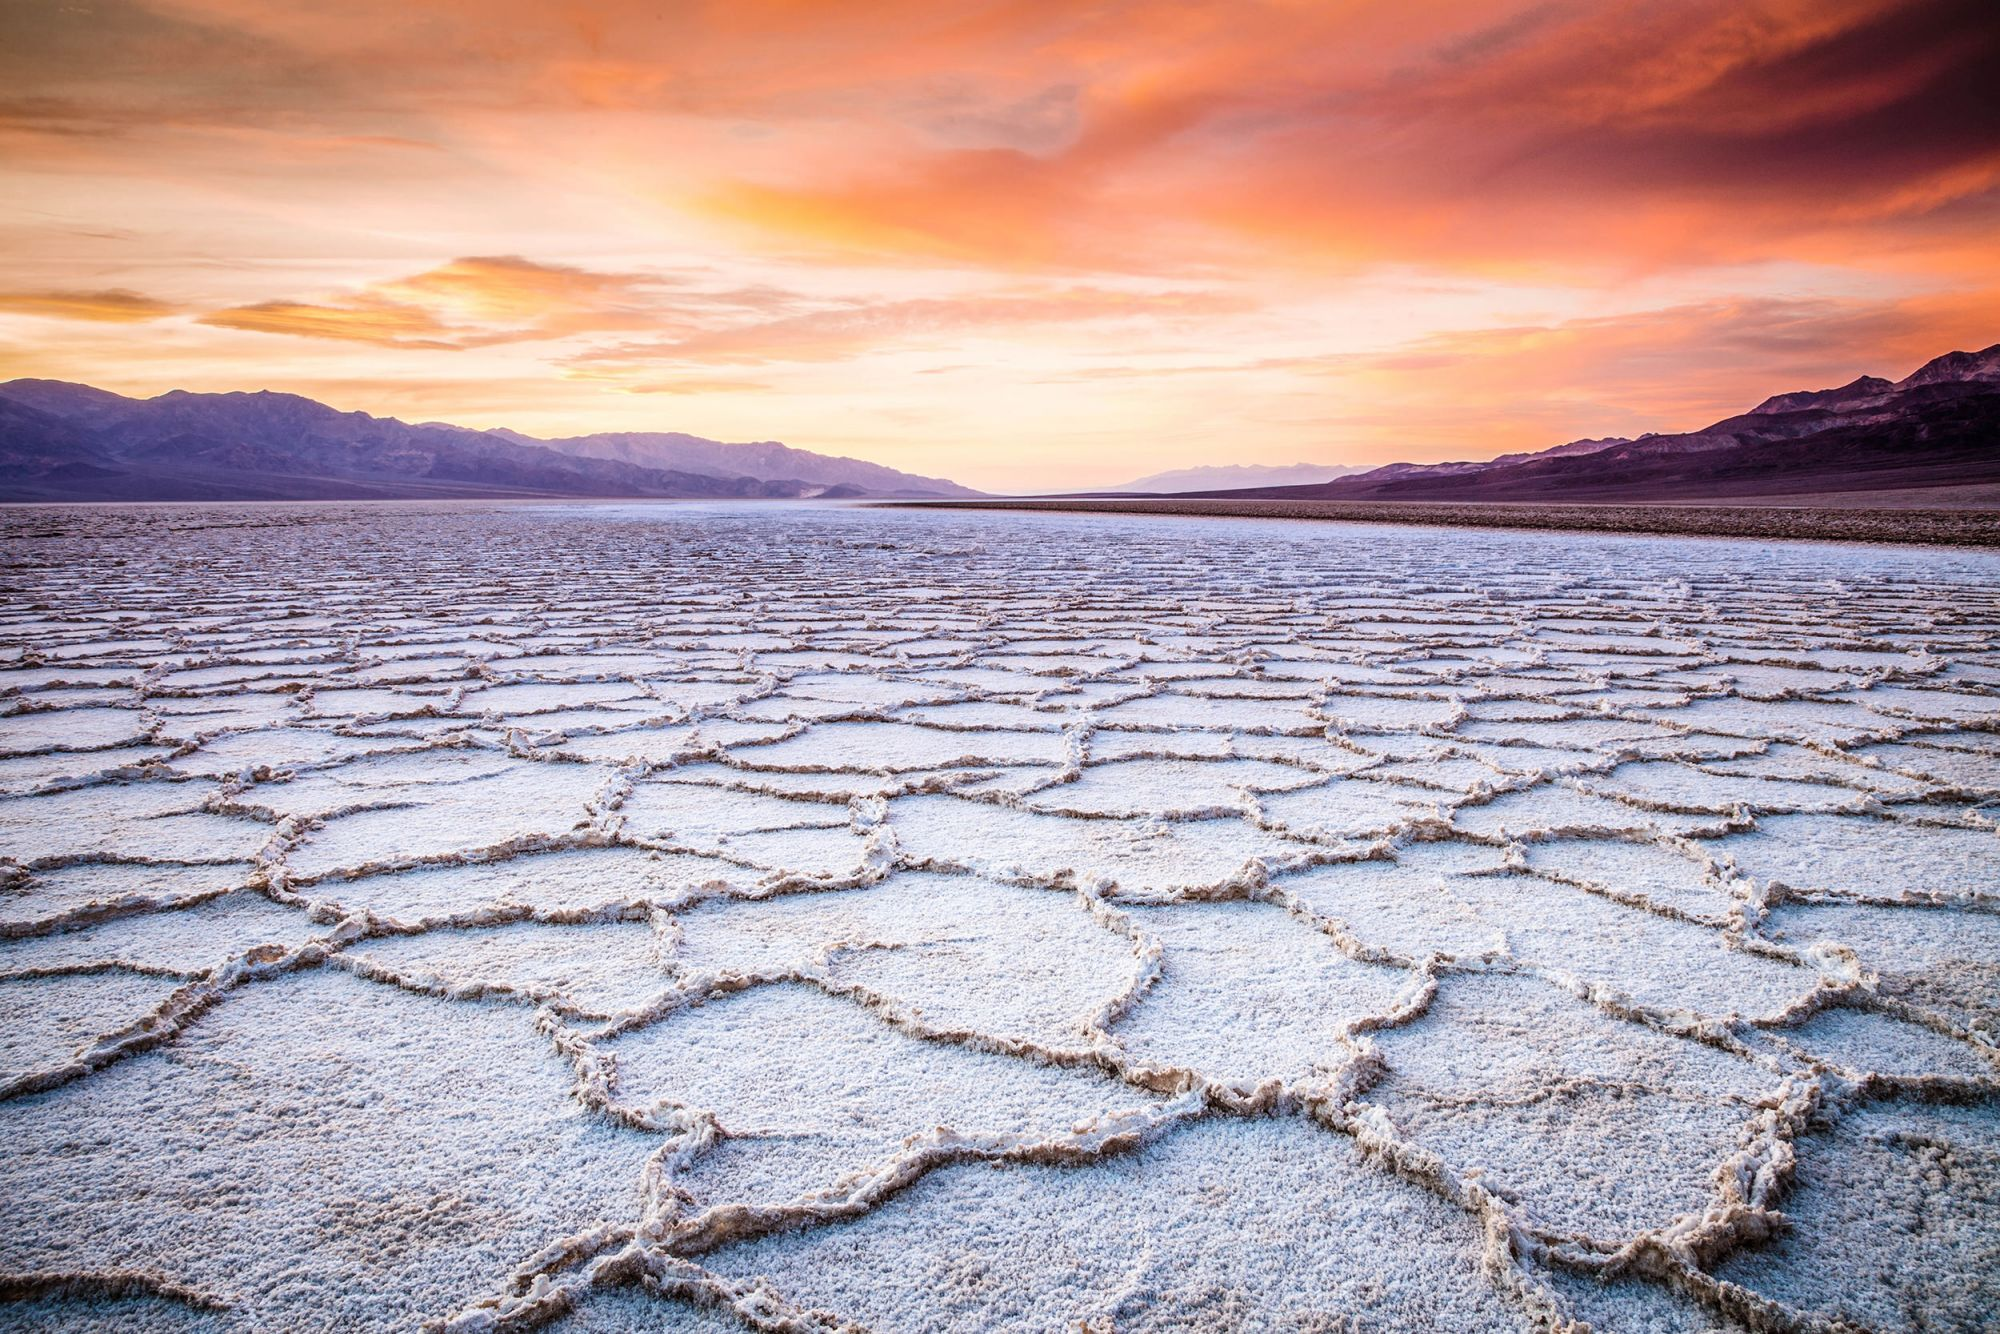 The sunsets over the Badwater landscape in Death Valley National Park.